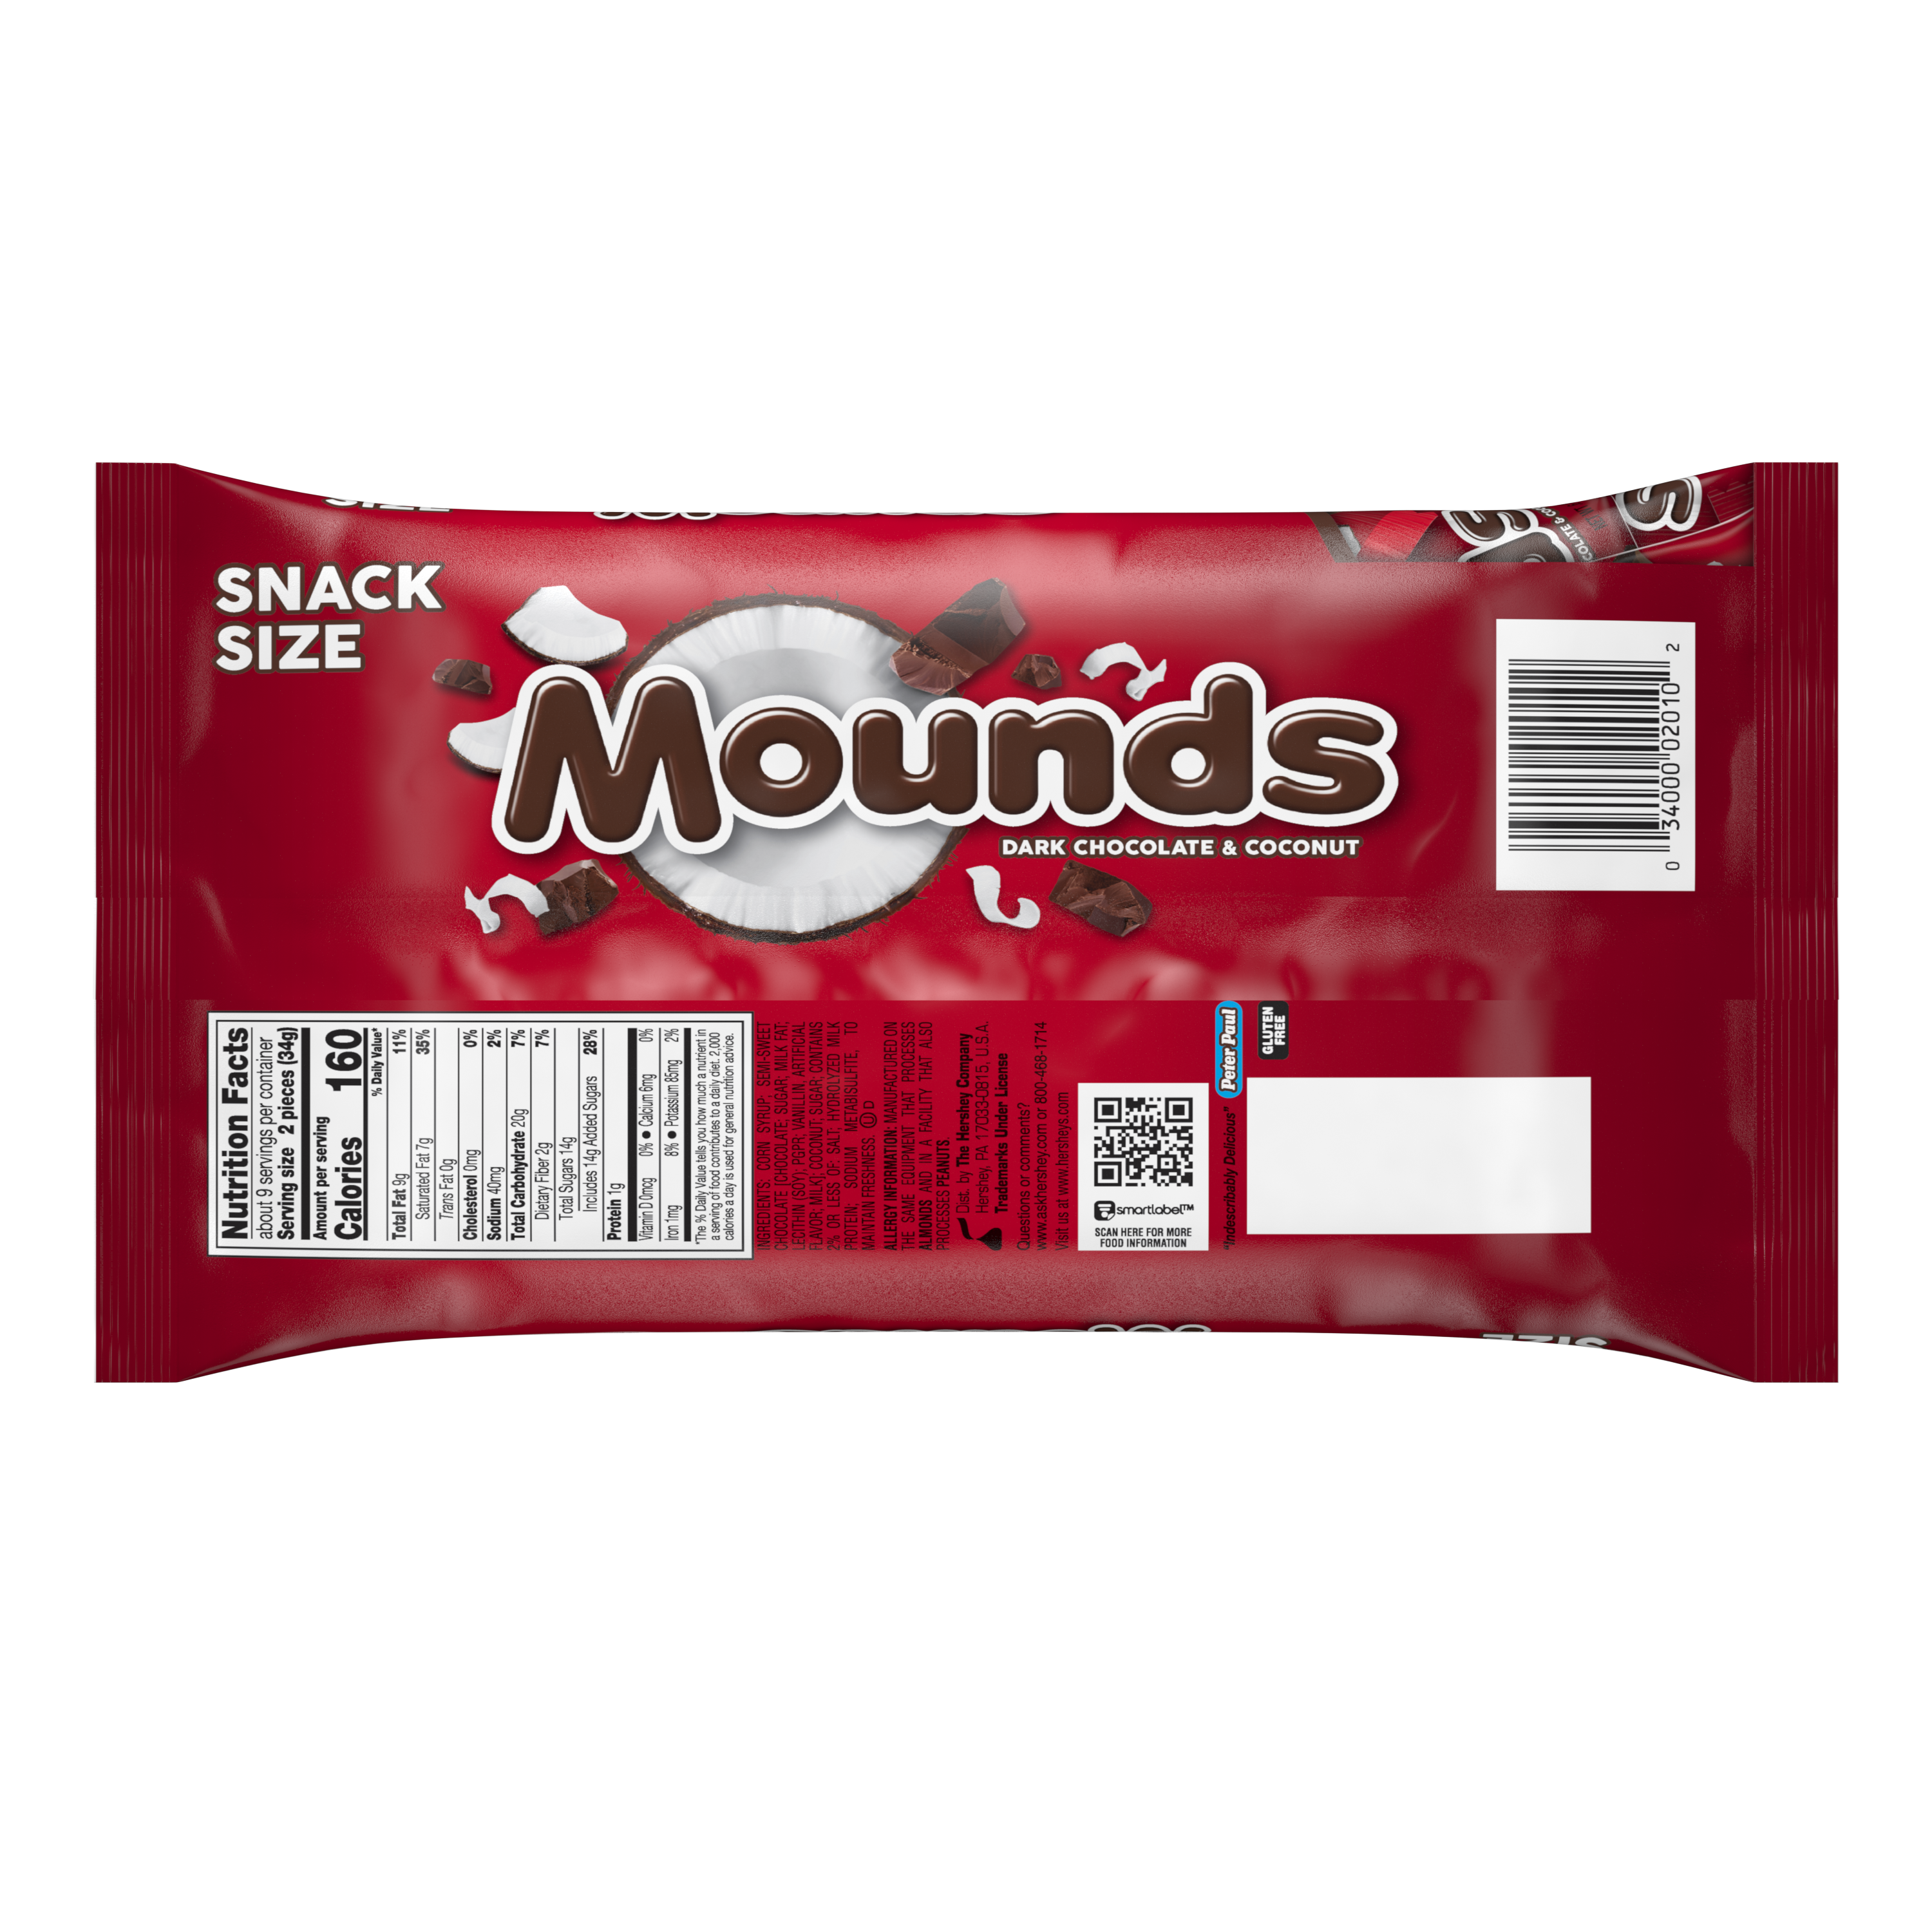 MOUNDS Dark Chocolate and Coconut Snack Size Candy Bars, 11.3 oz bag - Back of Package